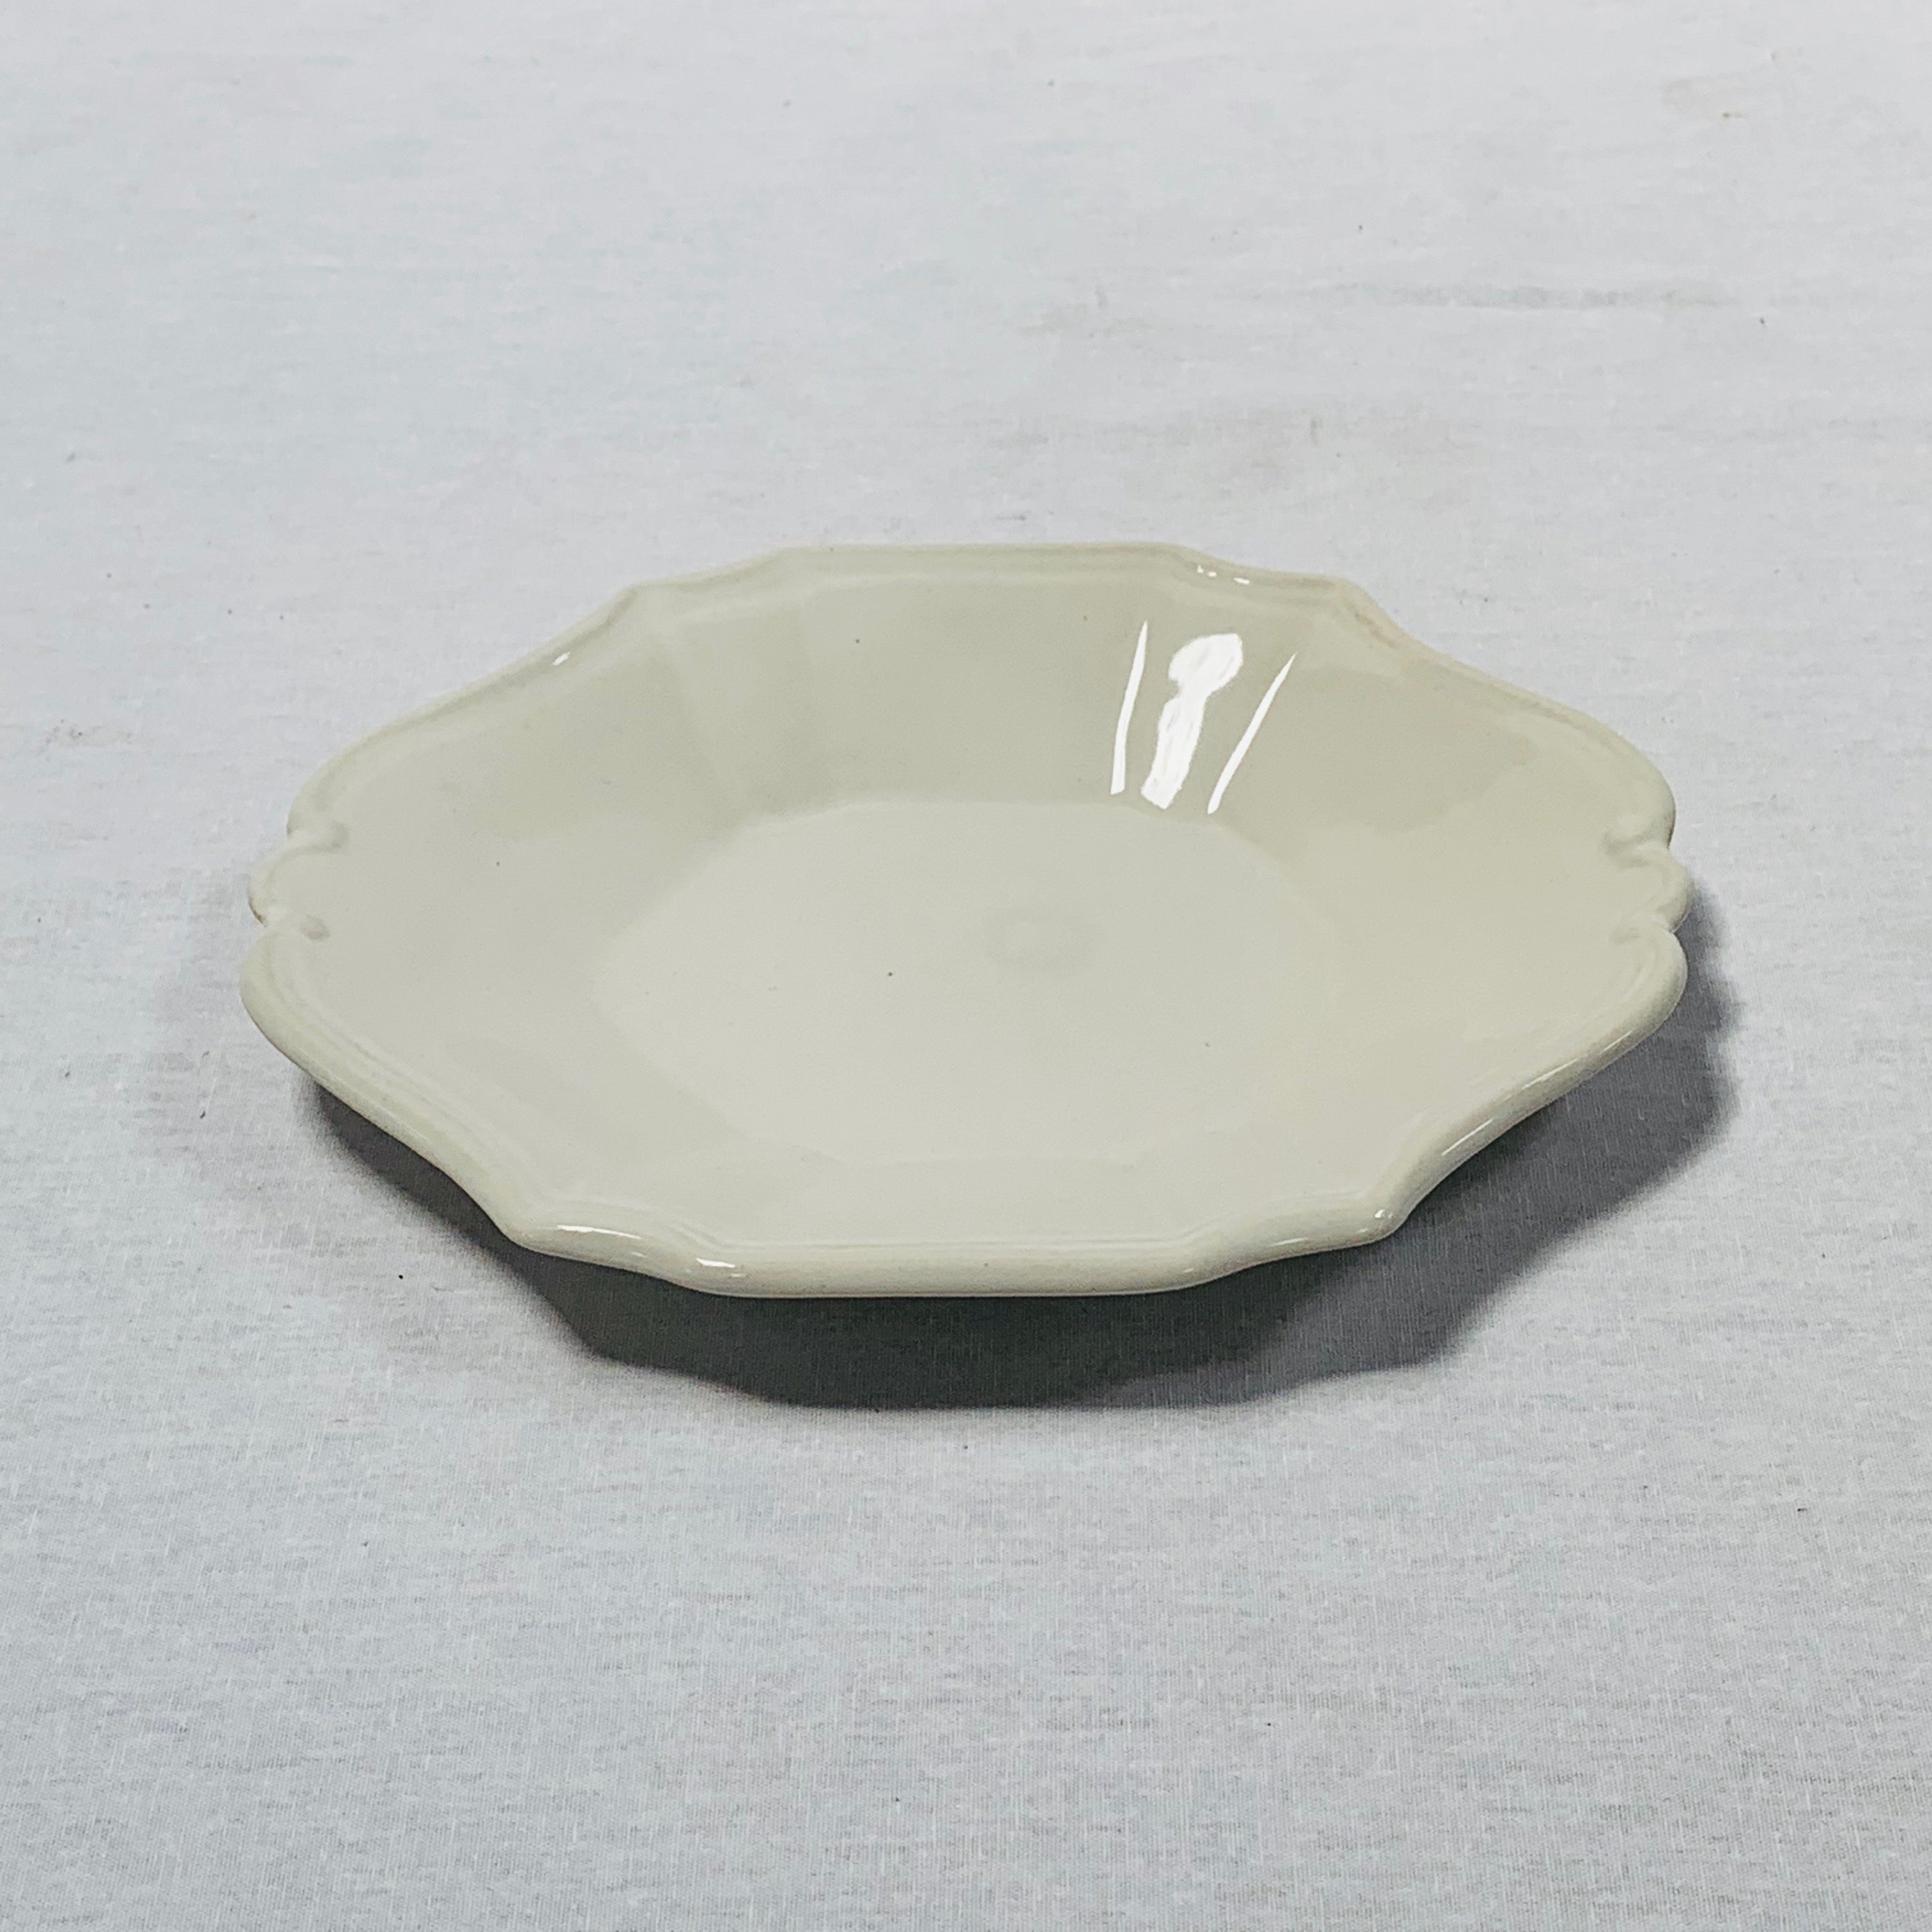 SMALL SIDE PLATE